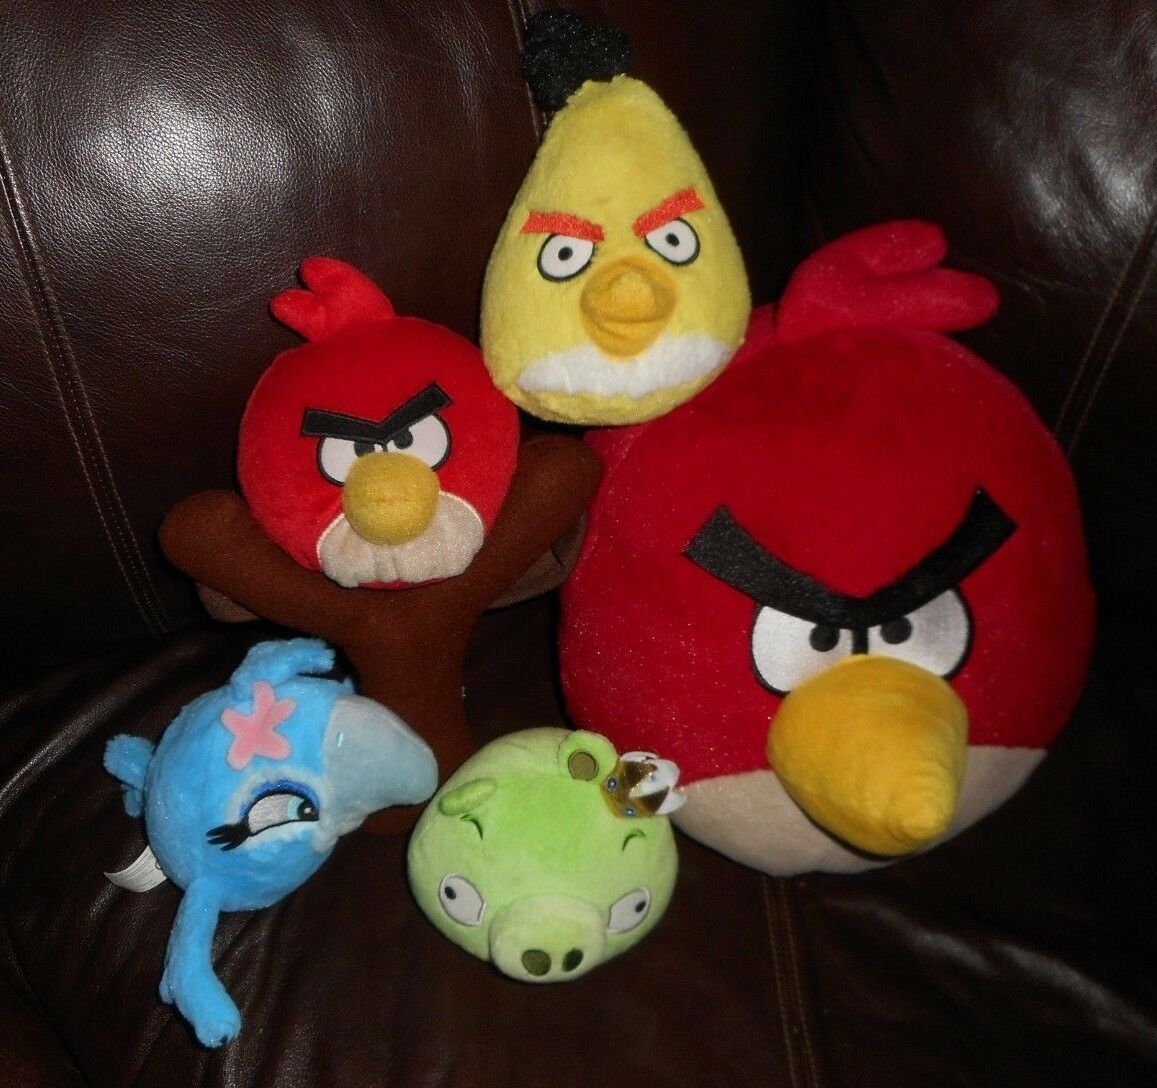 LOT OF 5 ANGRY BIRDS RED PILLOW blueE RIO GREEN YELLOW STUFFED ANIMAL PLUSH TOY